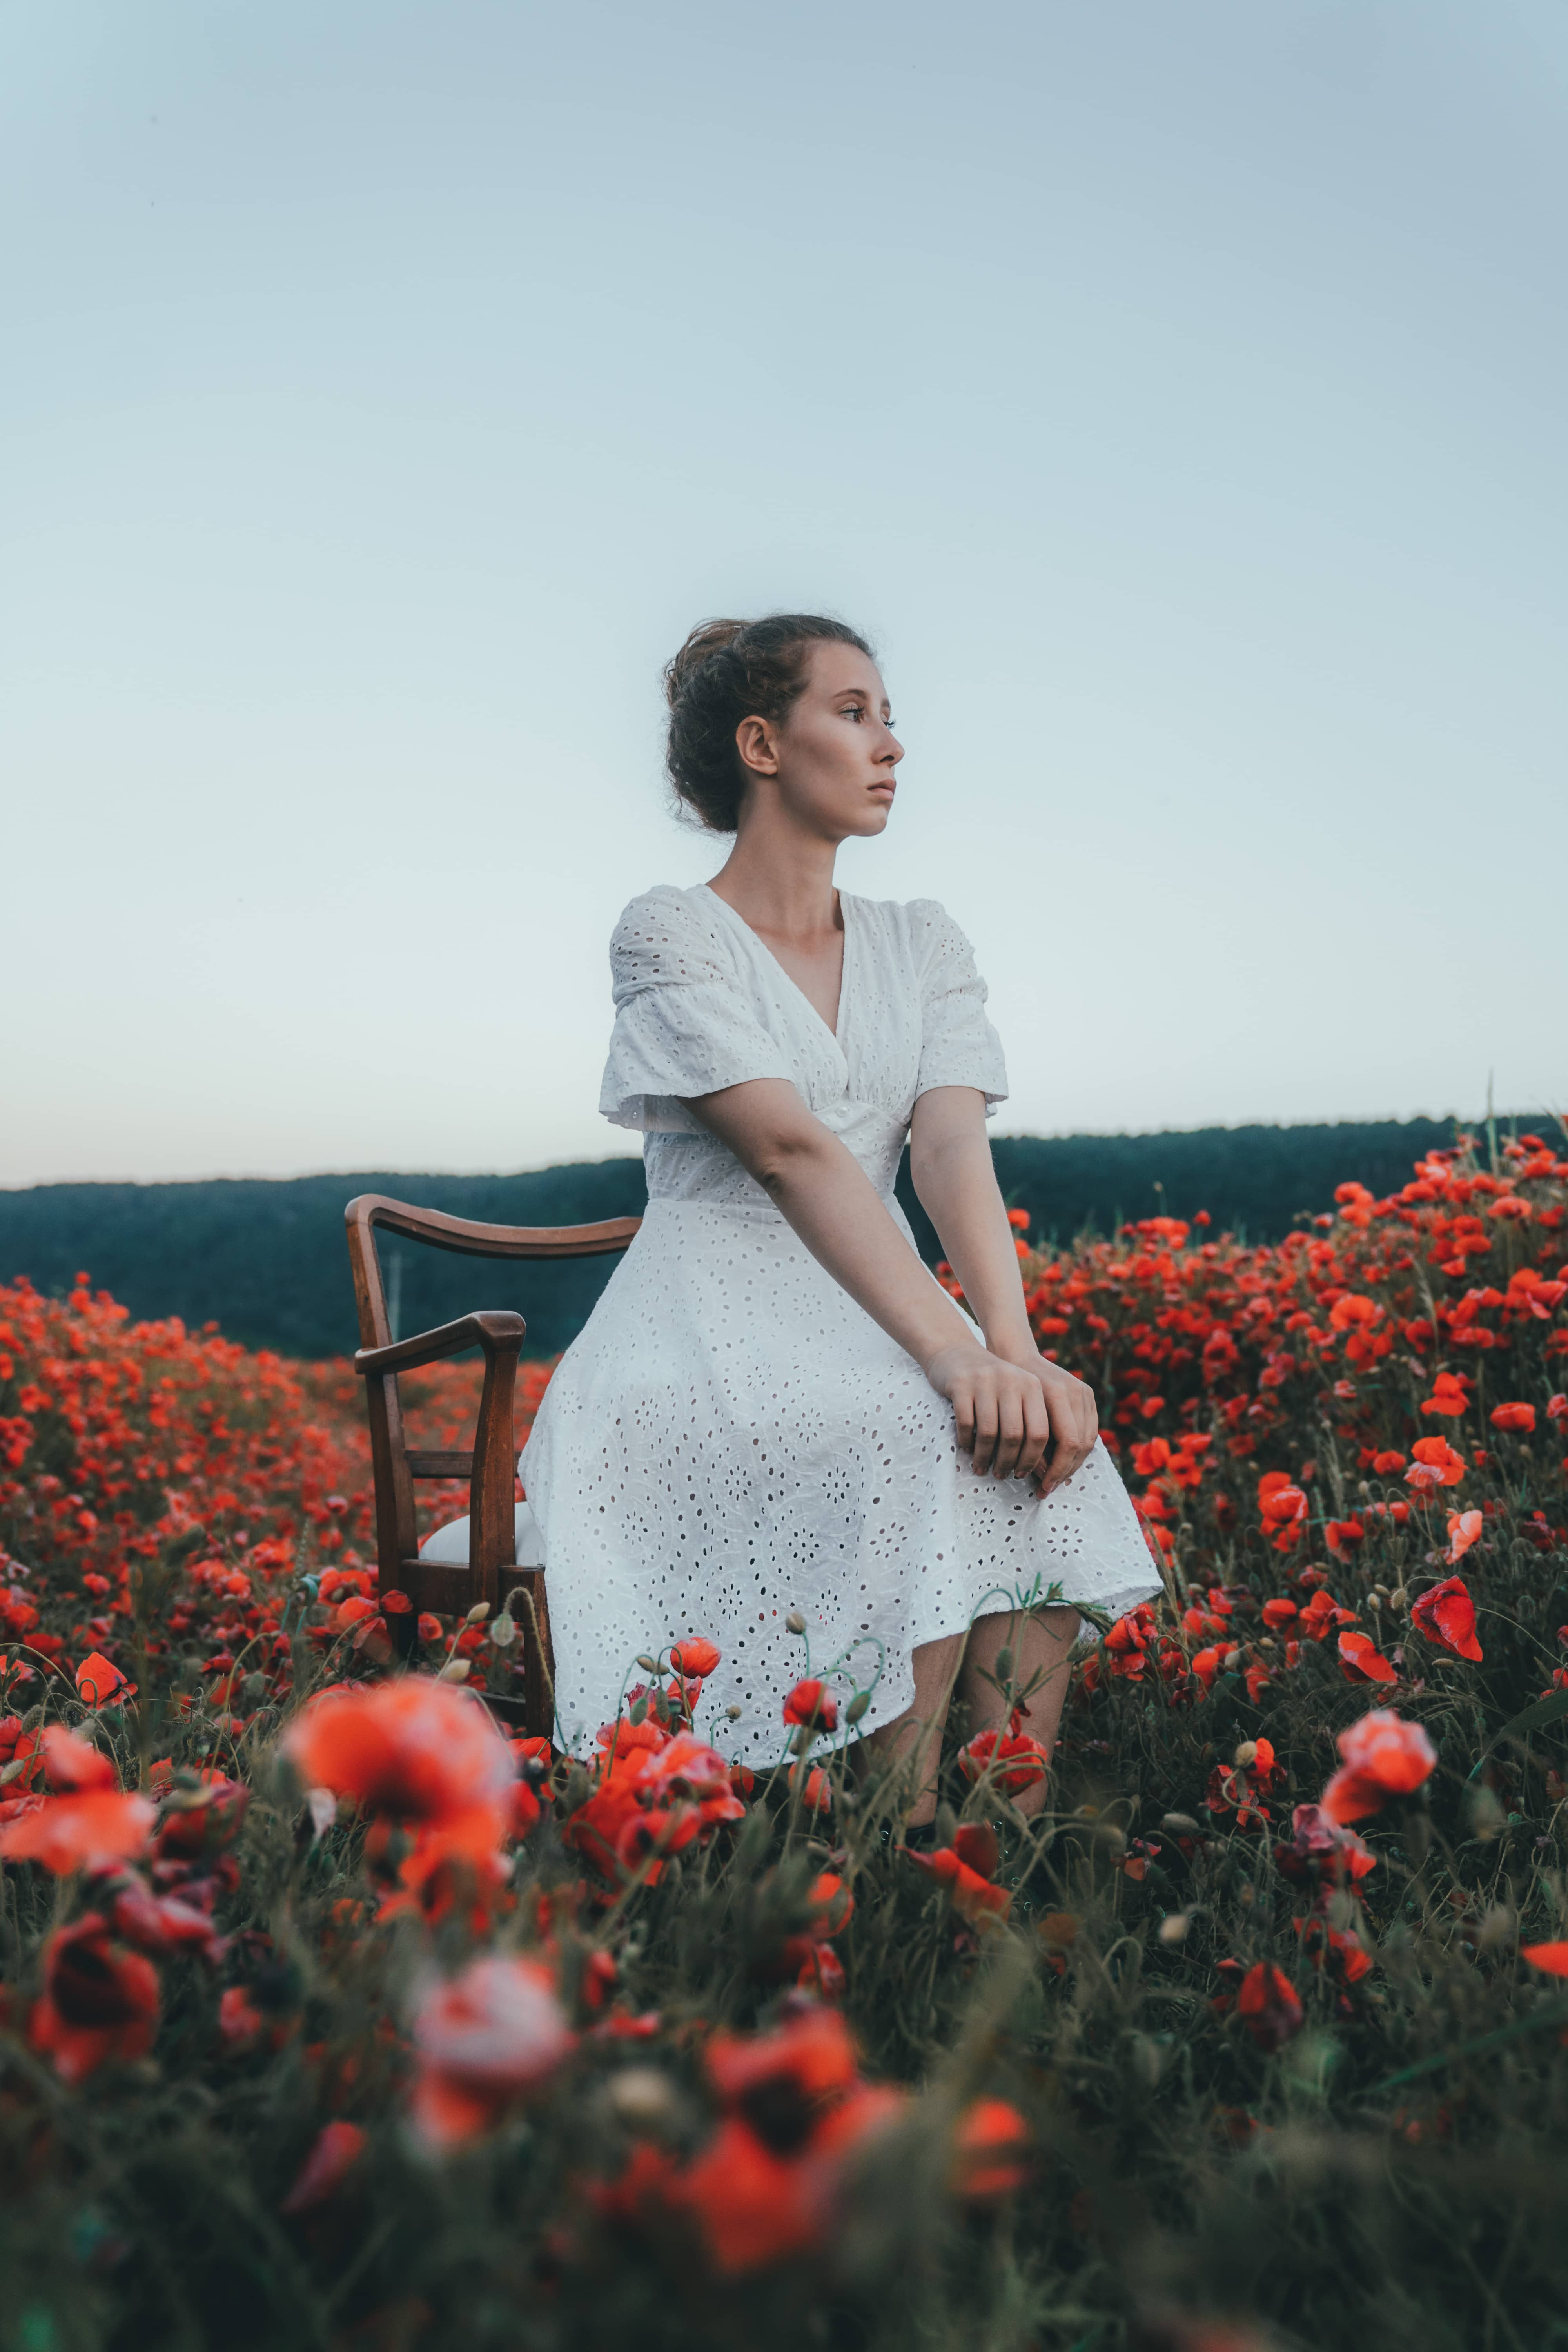 girl in white dress sitting on a chair surrounded by red poppy flowers